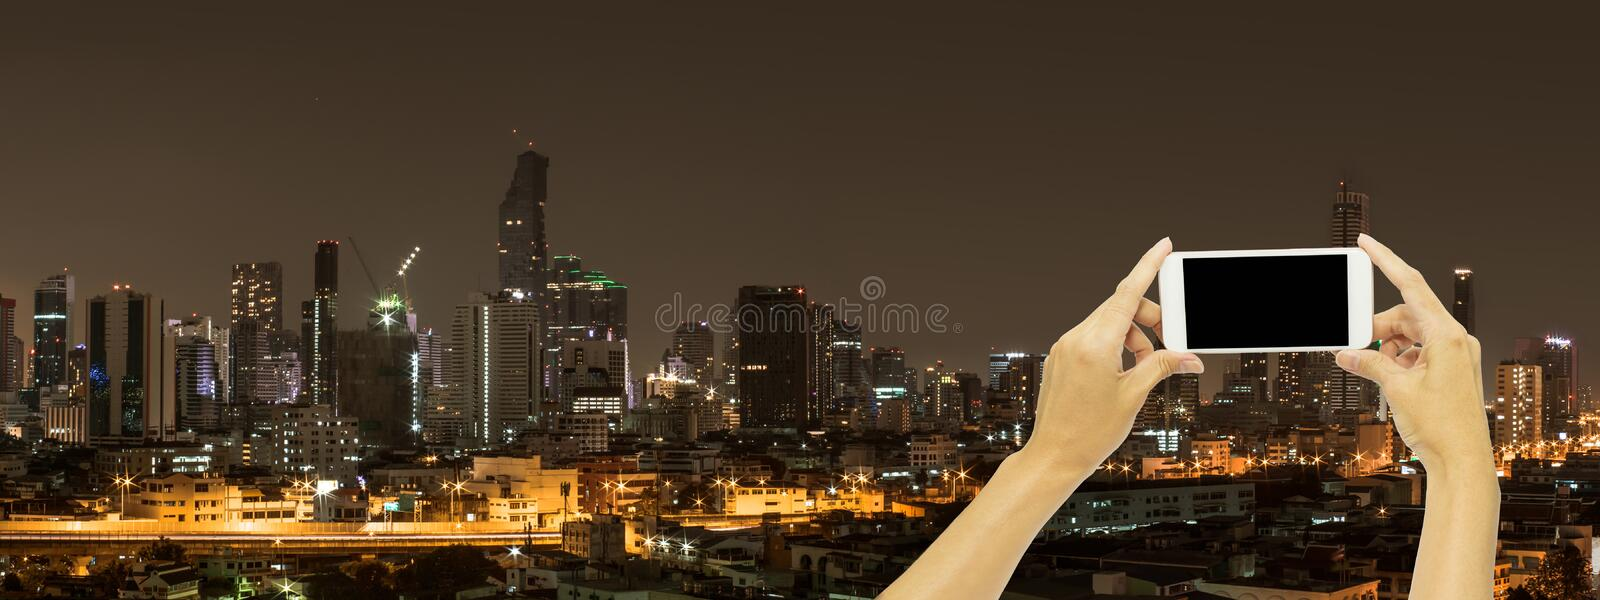 Mock up for advertising with Bangkok building at night time stock image